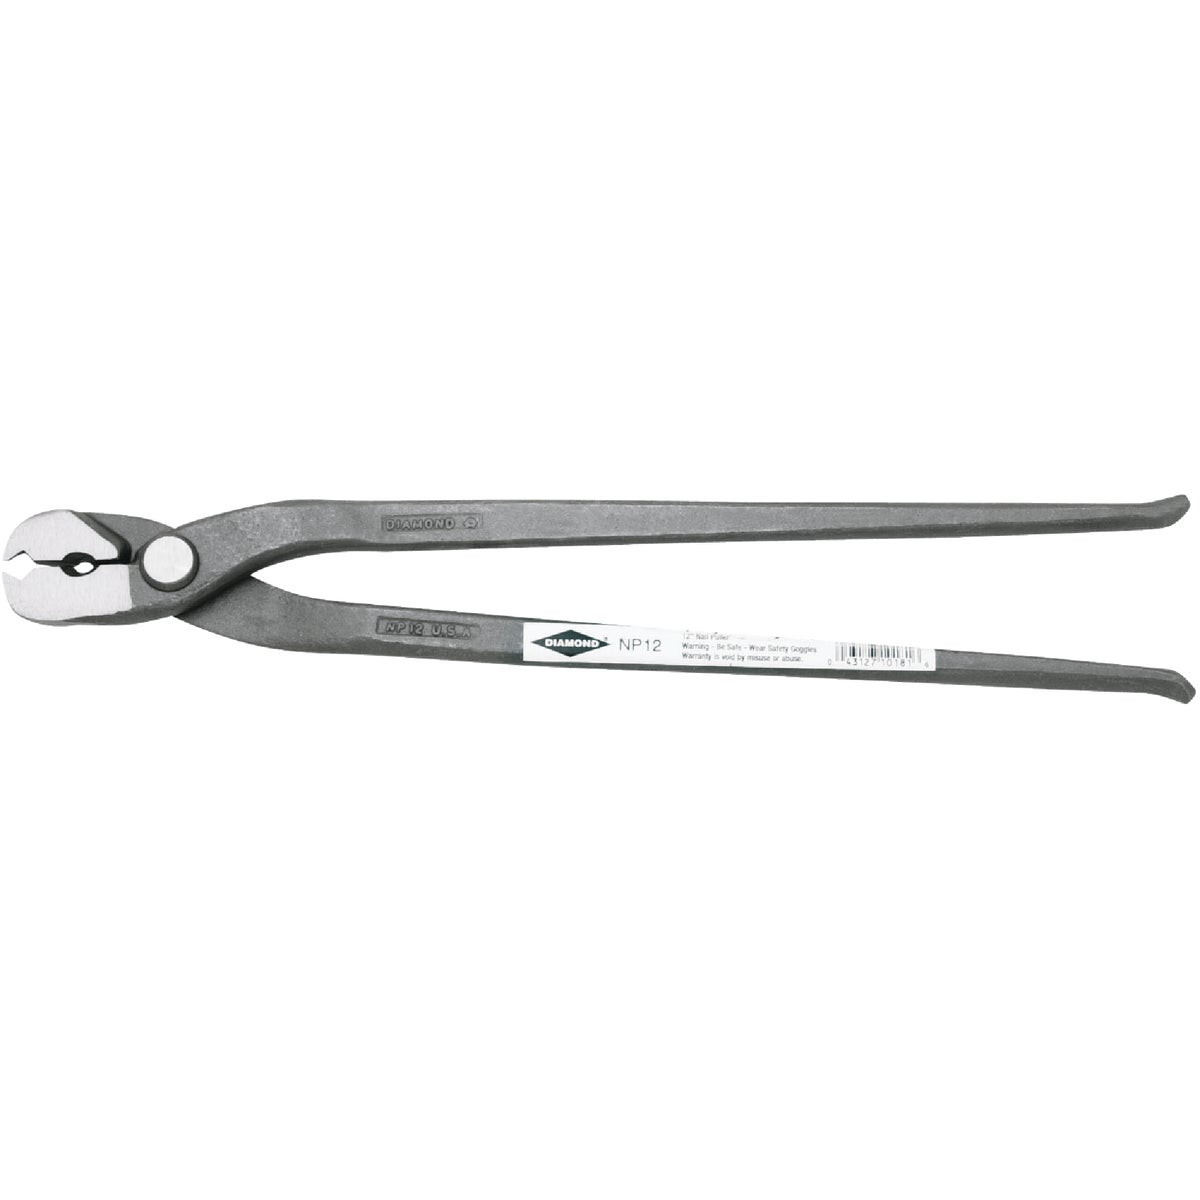 "12"" NAIL PULLER - NP12 by Apex Tool Group"